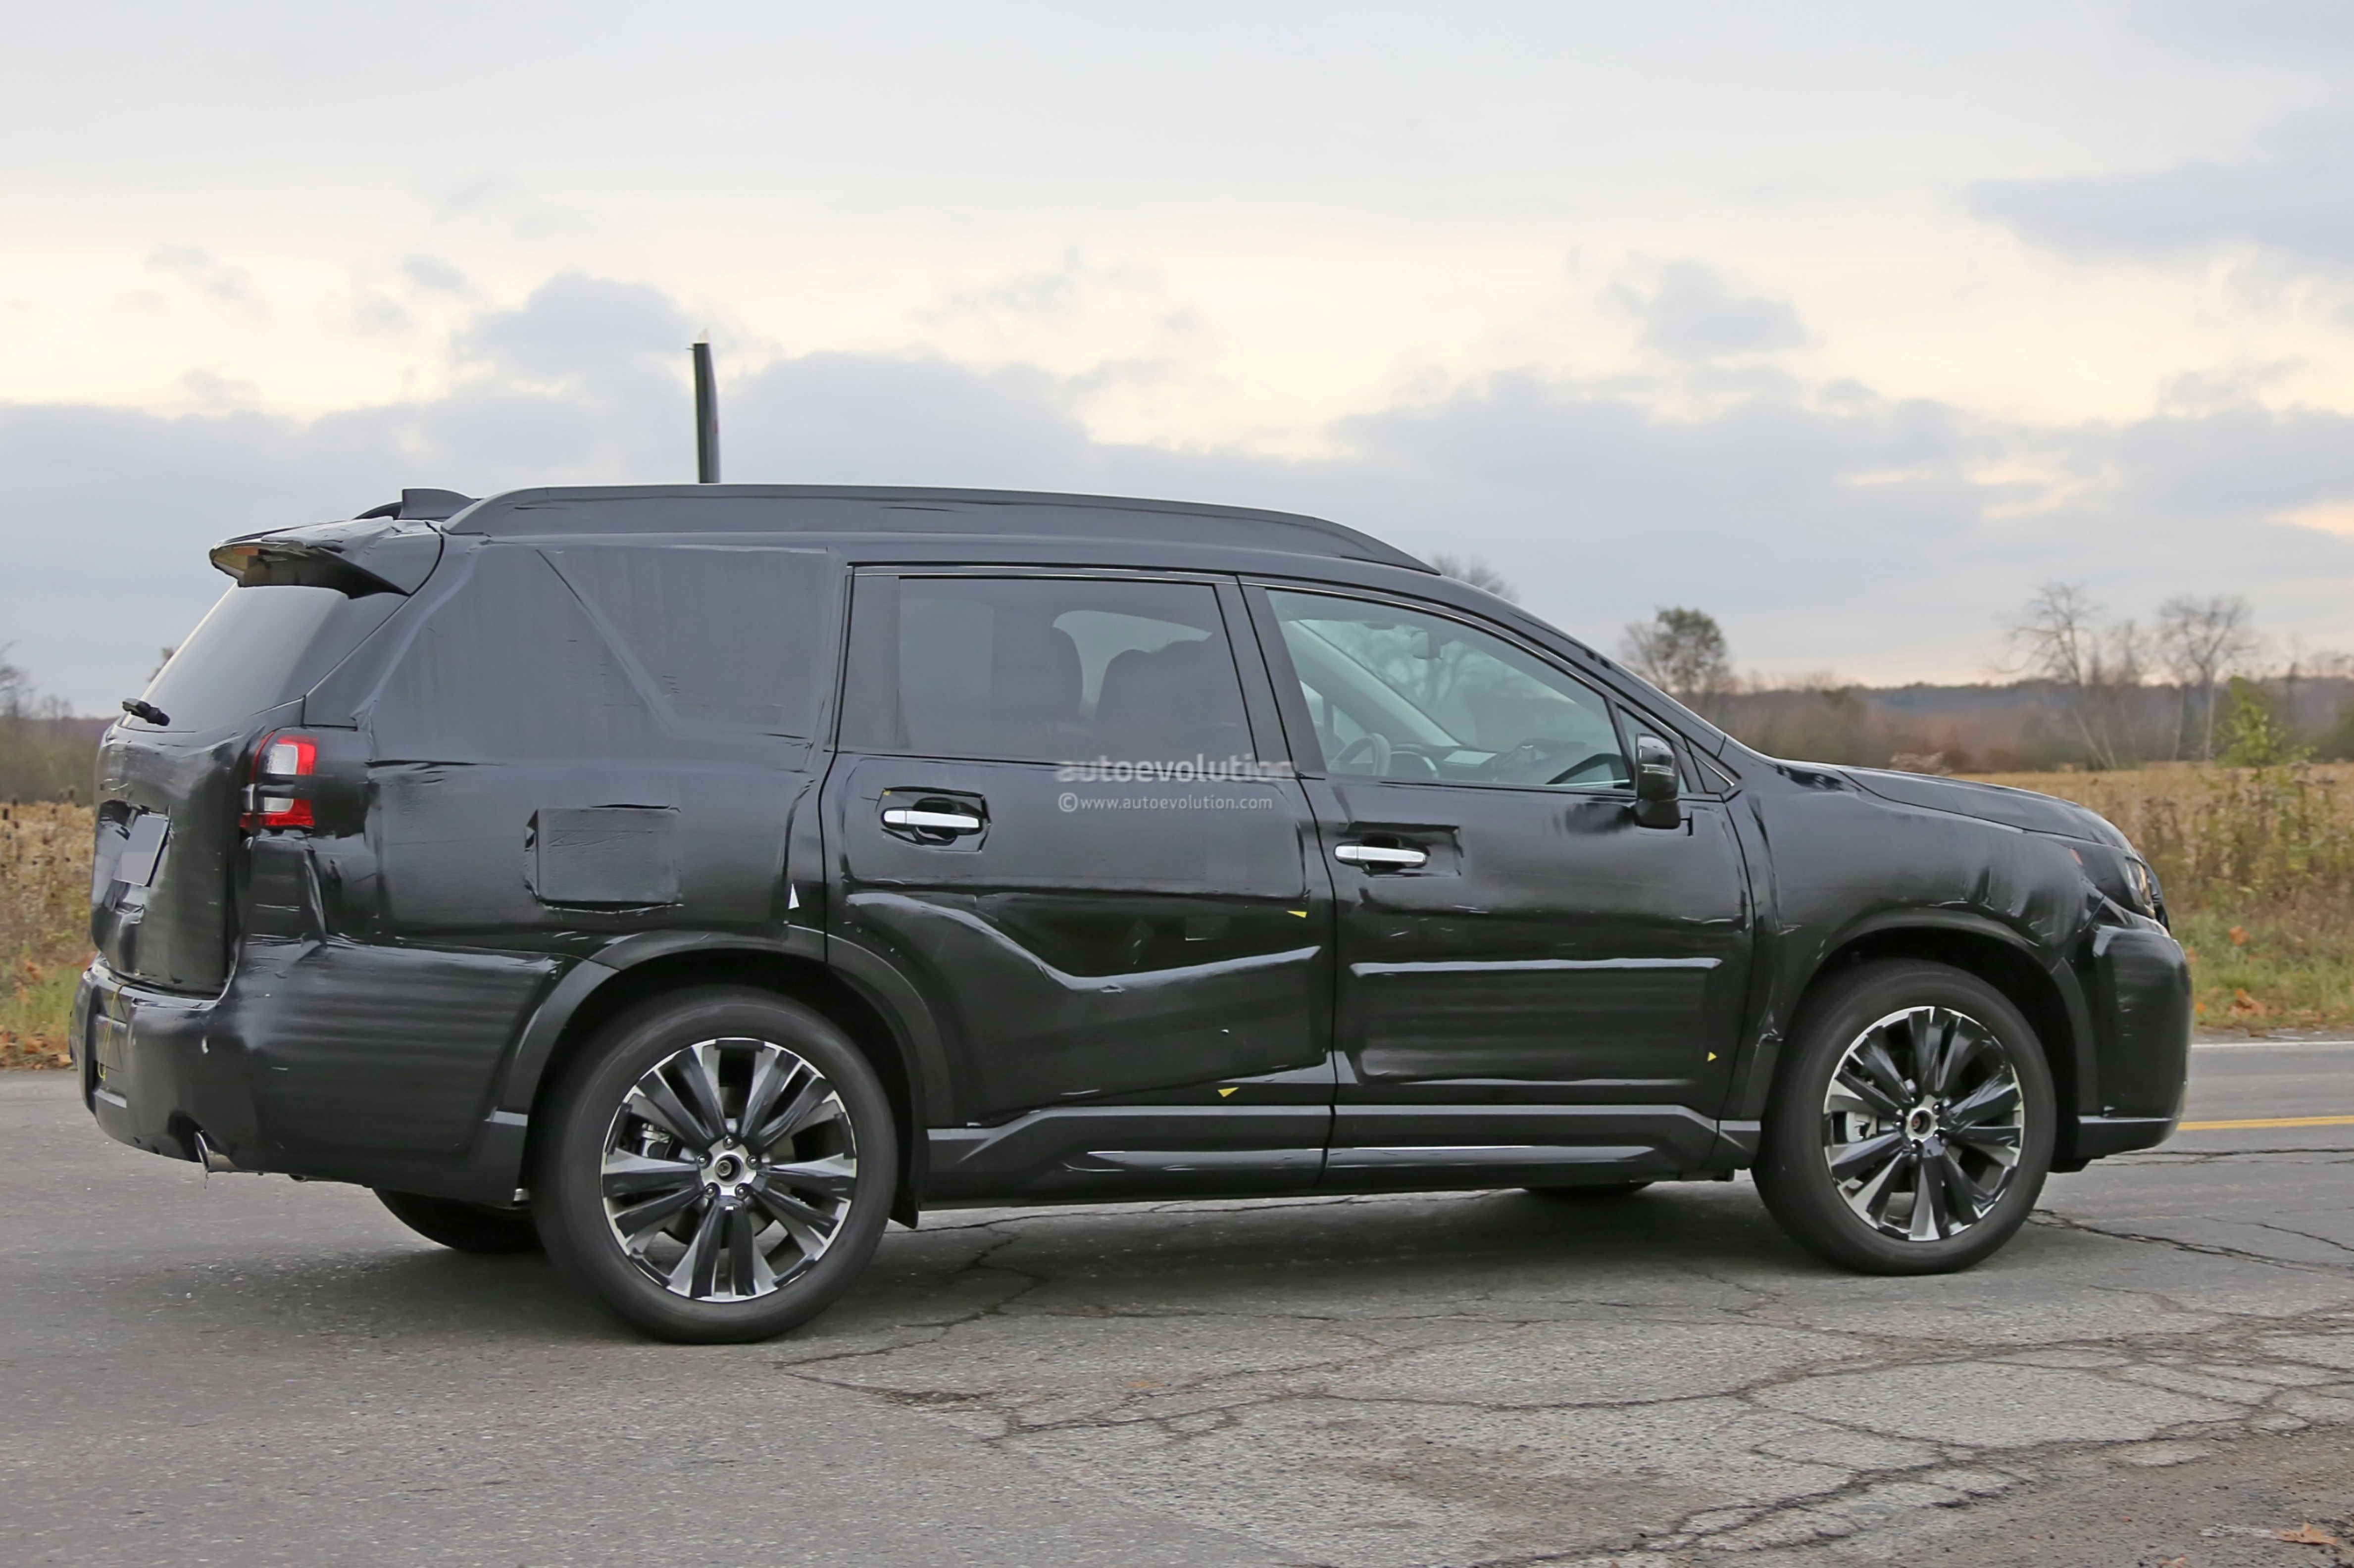 Minivan Buying Guide furthermore 2017 Chrysler Pacifica Minivan Debuts At 2016 Detroit Auto Show furthermore New 2018 Chrysler Pacifica Touring Plus Fwd Passenger Van 2c4rc1fgxjr187005 additionally Spyshots 2019 Subaru Ascent Rolls With Chrysler Pacifica And Toyota Prius Prime 121791 likewise 2018. on chrysler pacifica seating